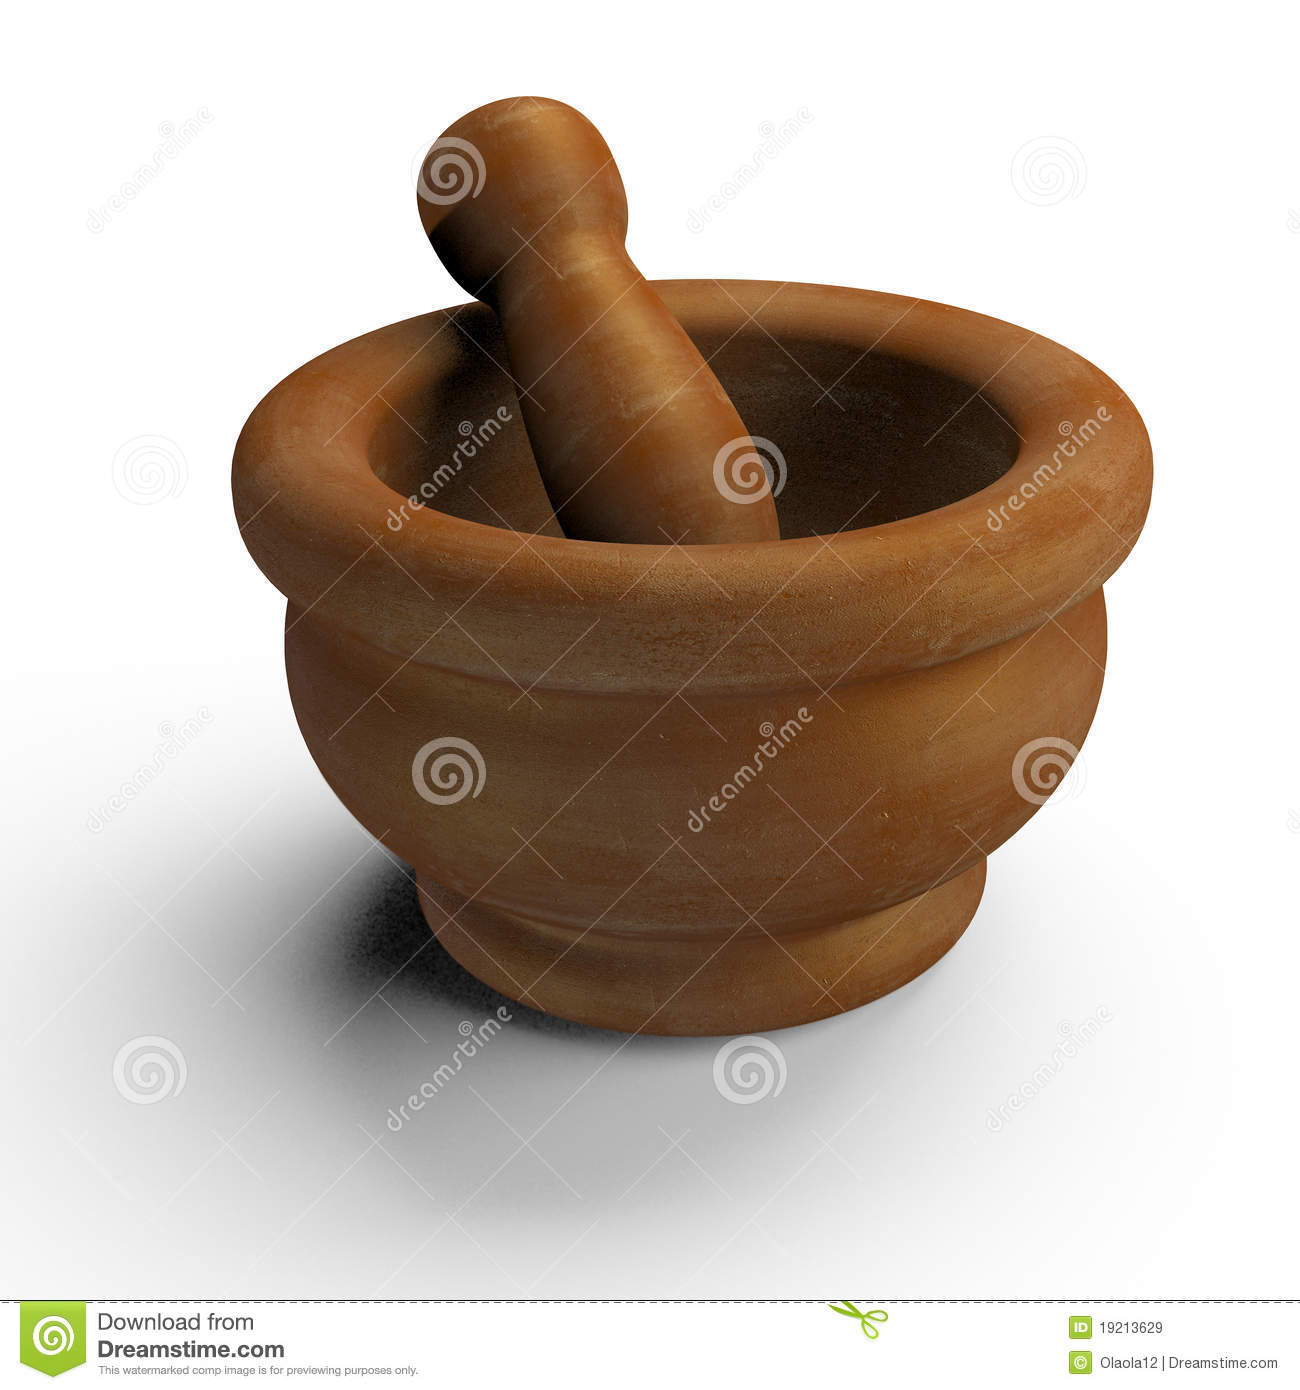 how to clean a ceramic mortar and pestle